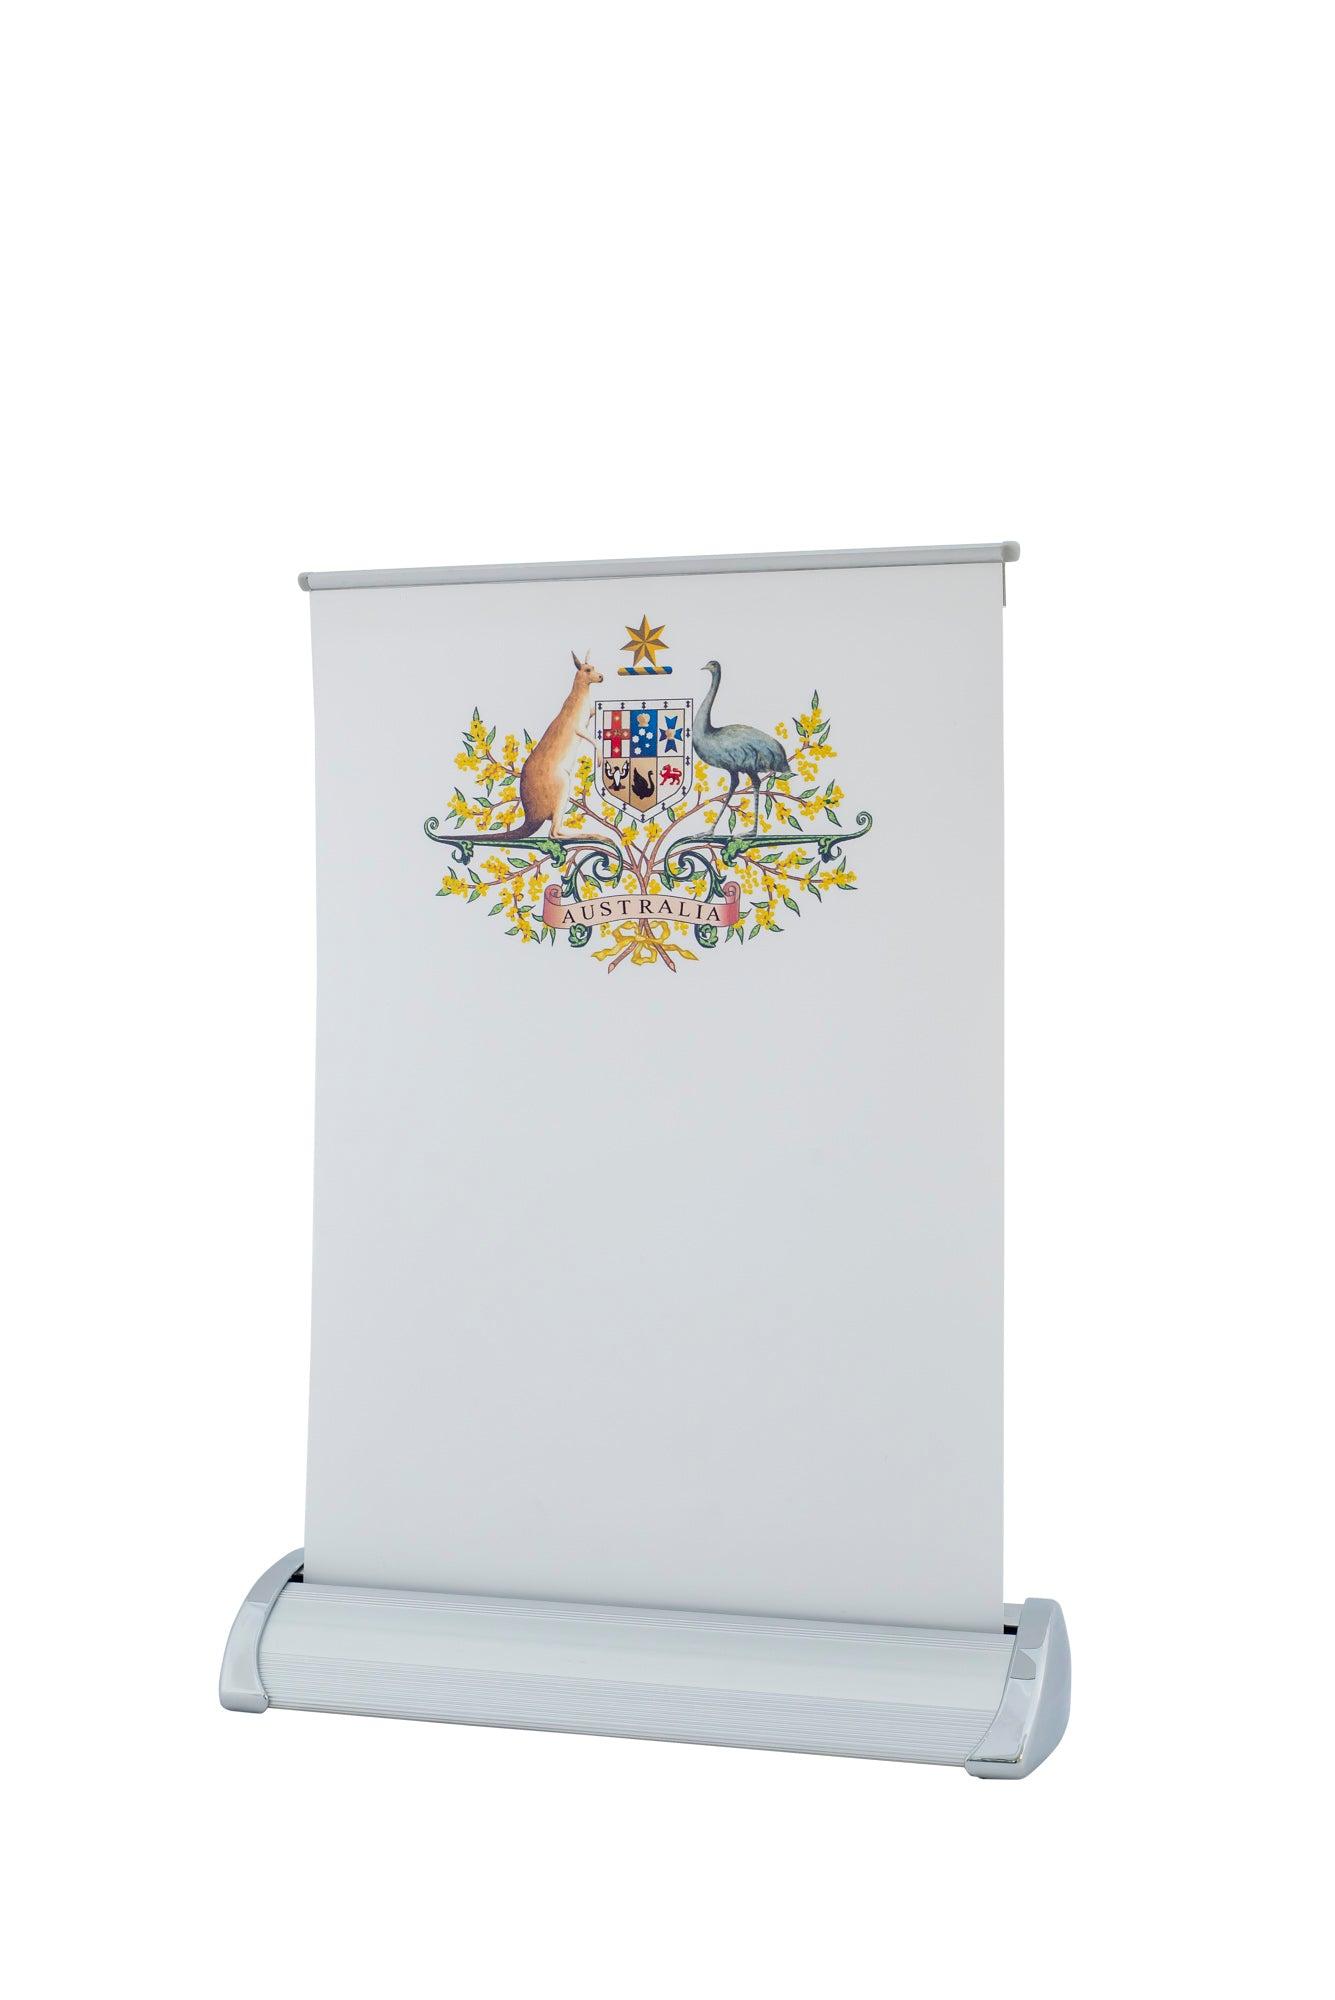 Coat of Arms pull up banner (A4 Size)